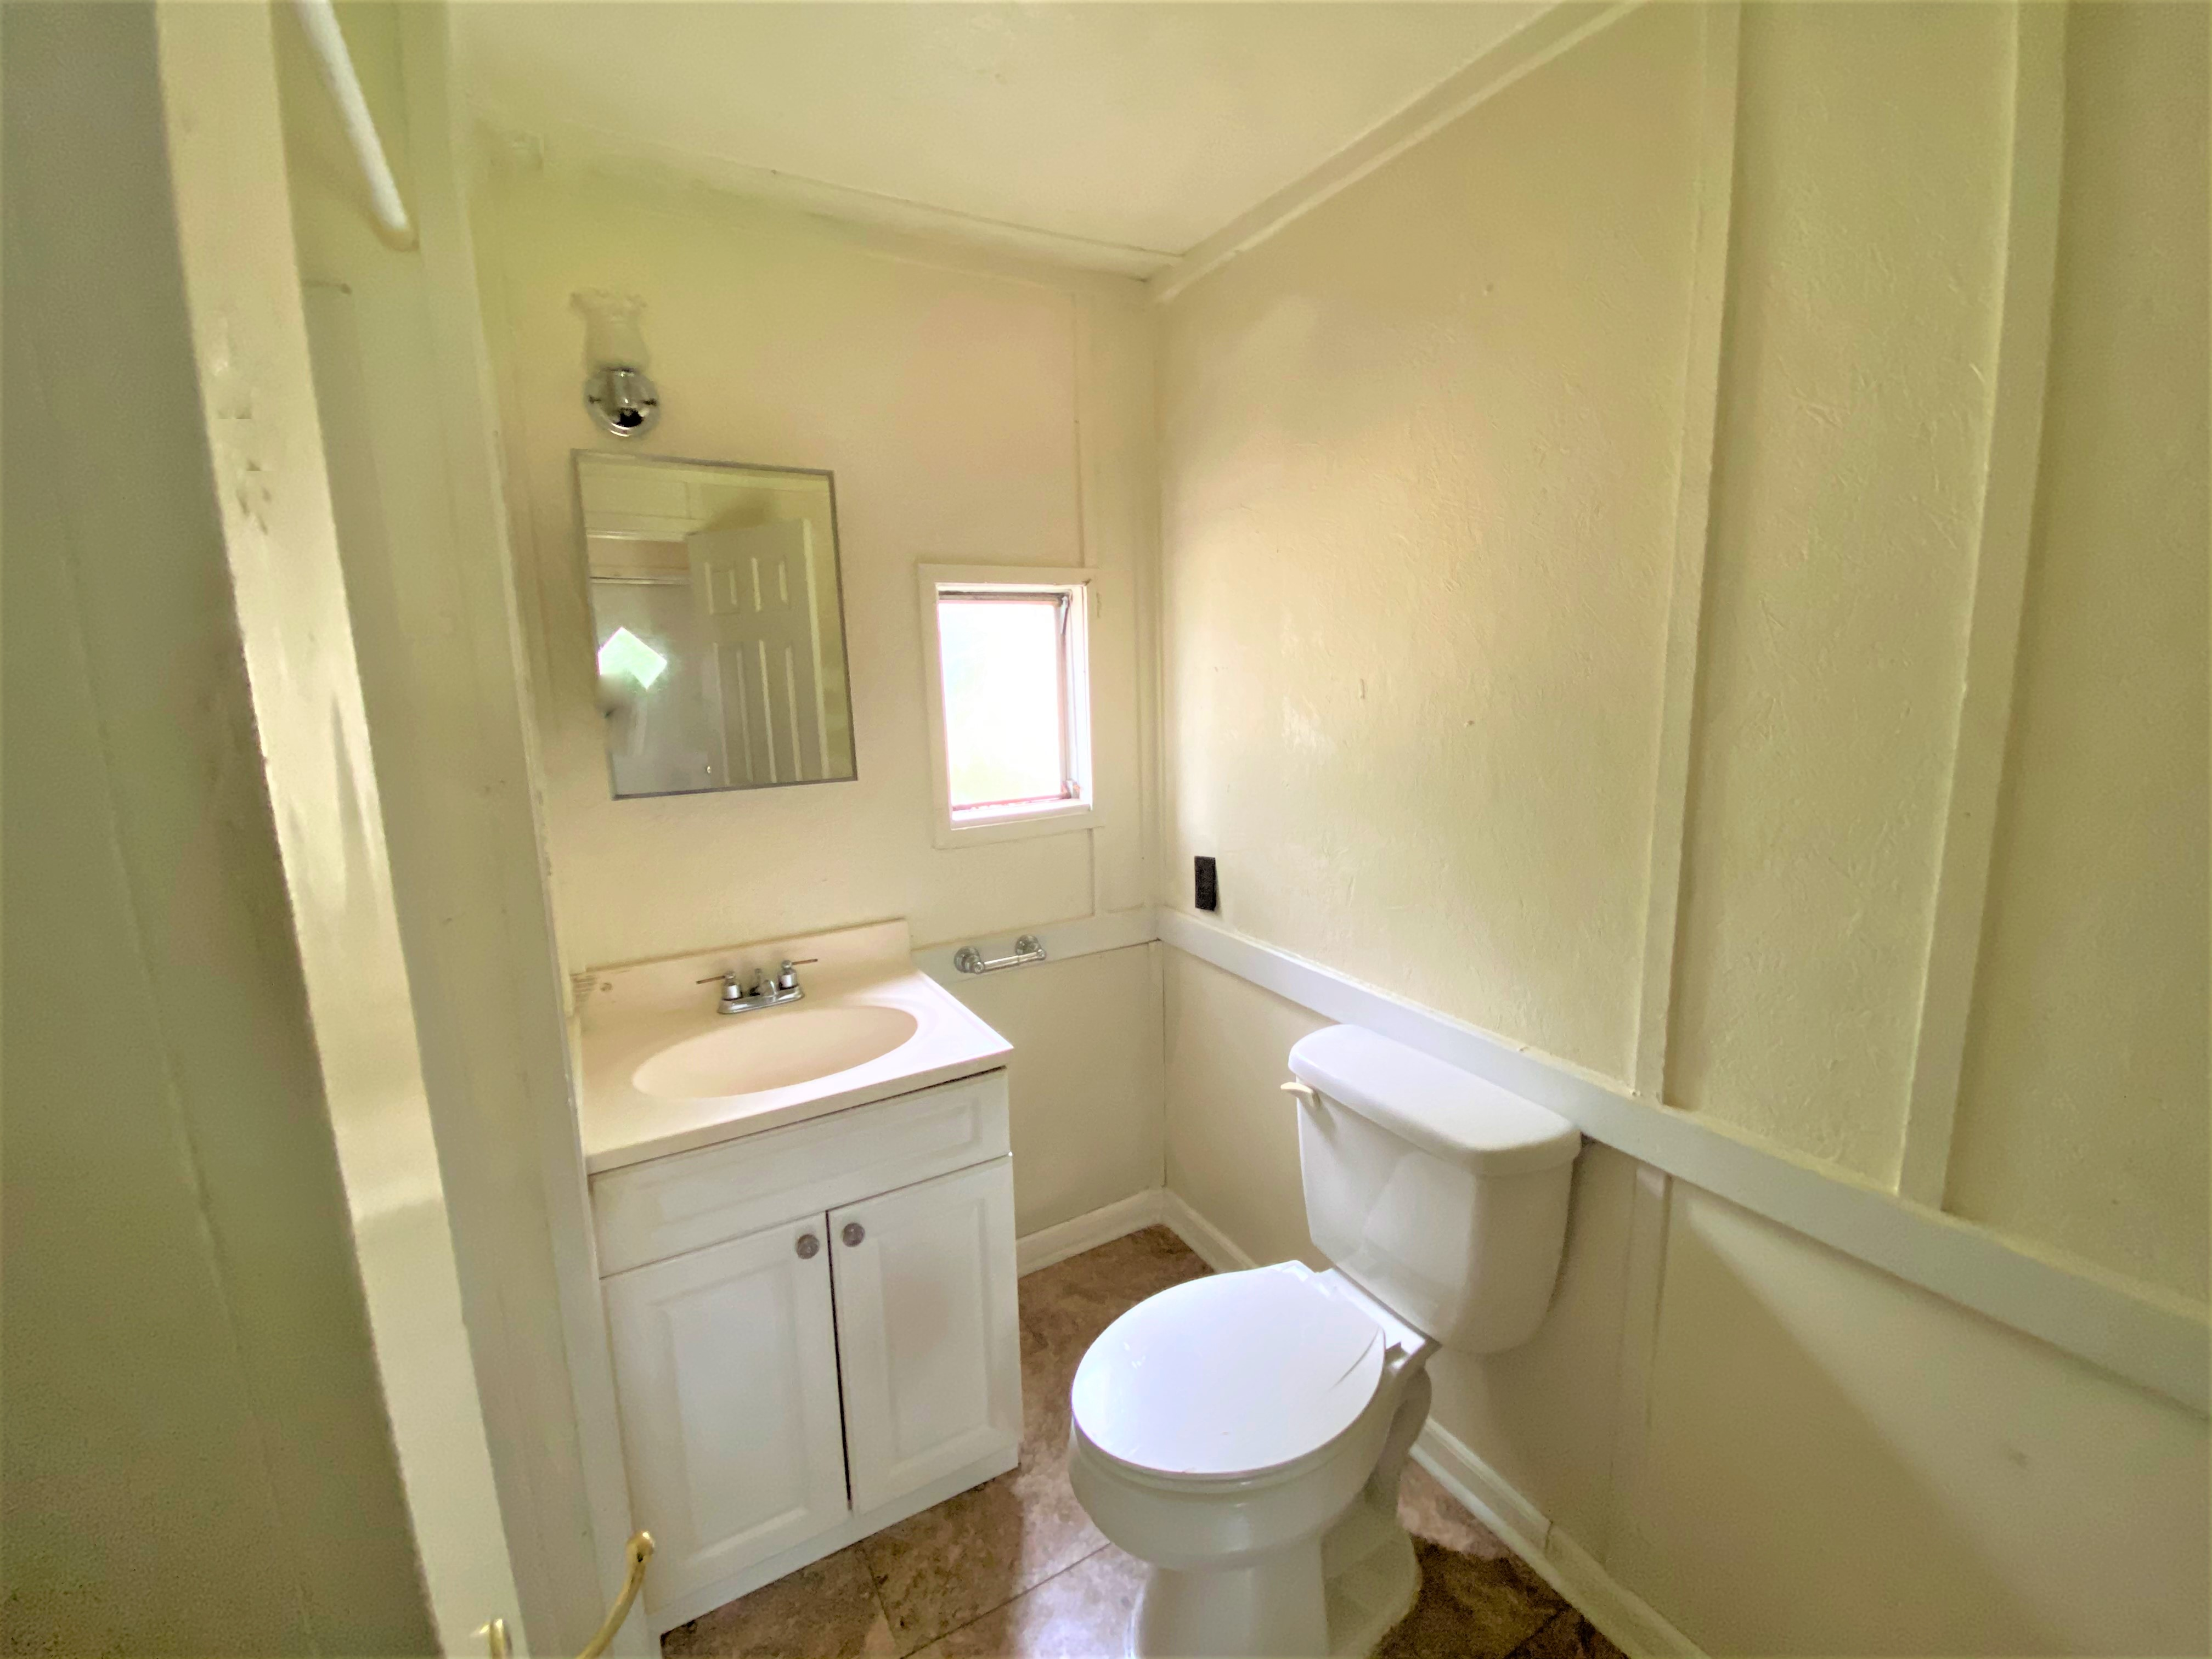 7248 Patricia Drive, 2 Bedrooms Bedrooms, ,1 BathroomBathrooms,Home,For Rent,Patricia Drive,1425